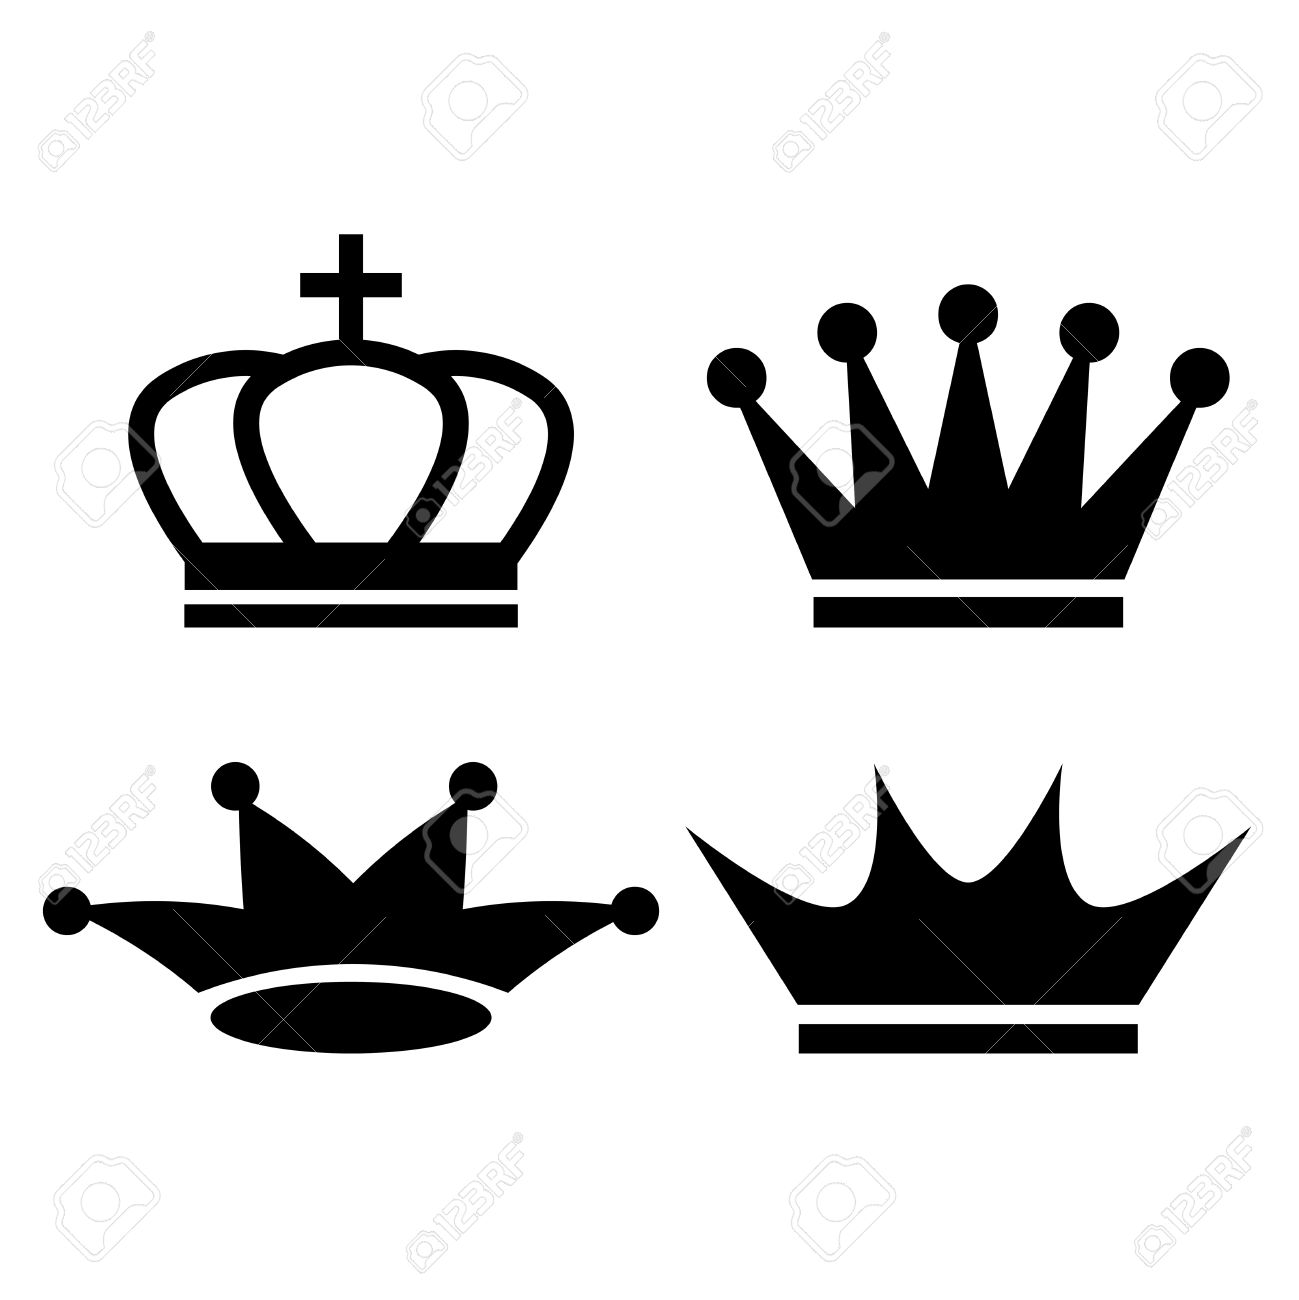 King crown icon royalty free cliparts vectors and stock king crown icon stock vector 36983618 thecheapjerseys Image collections